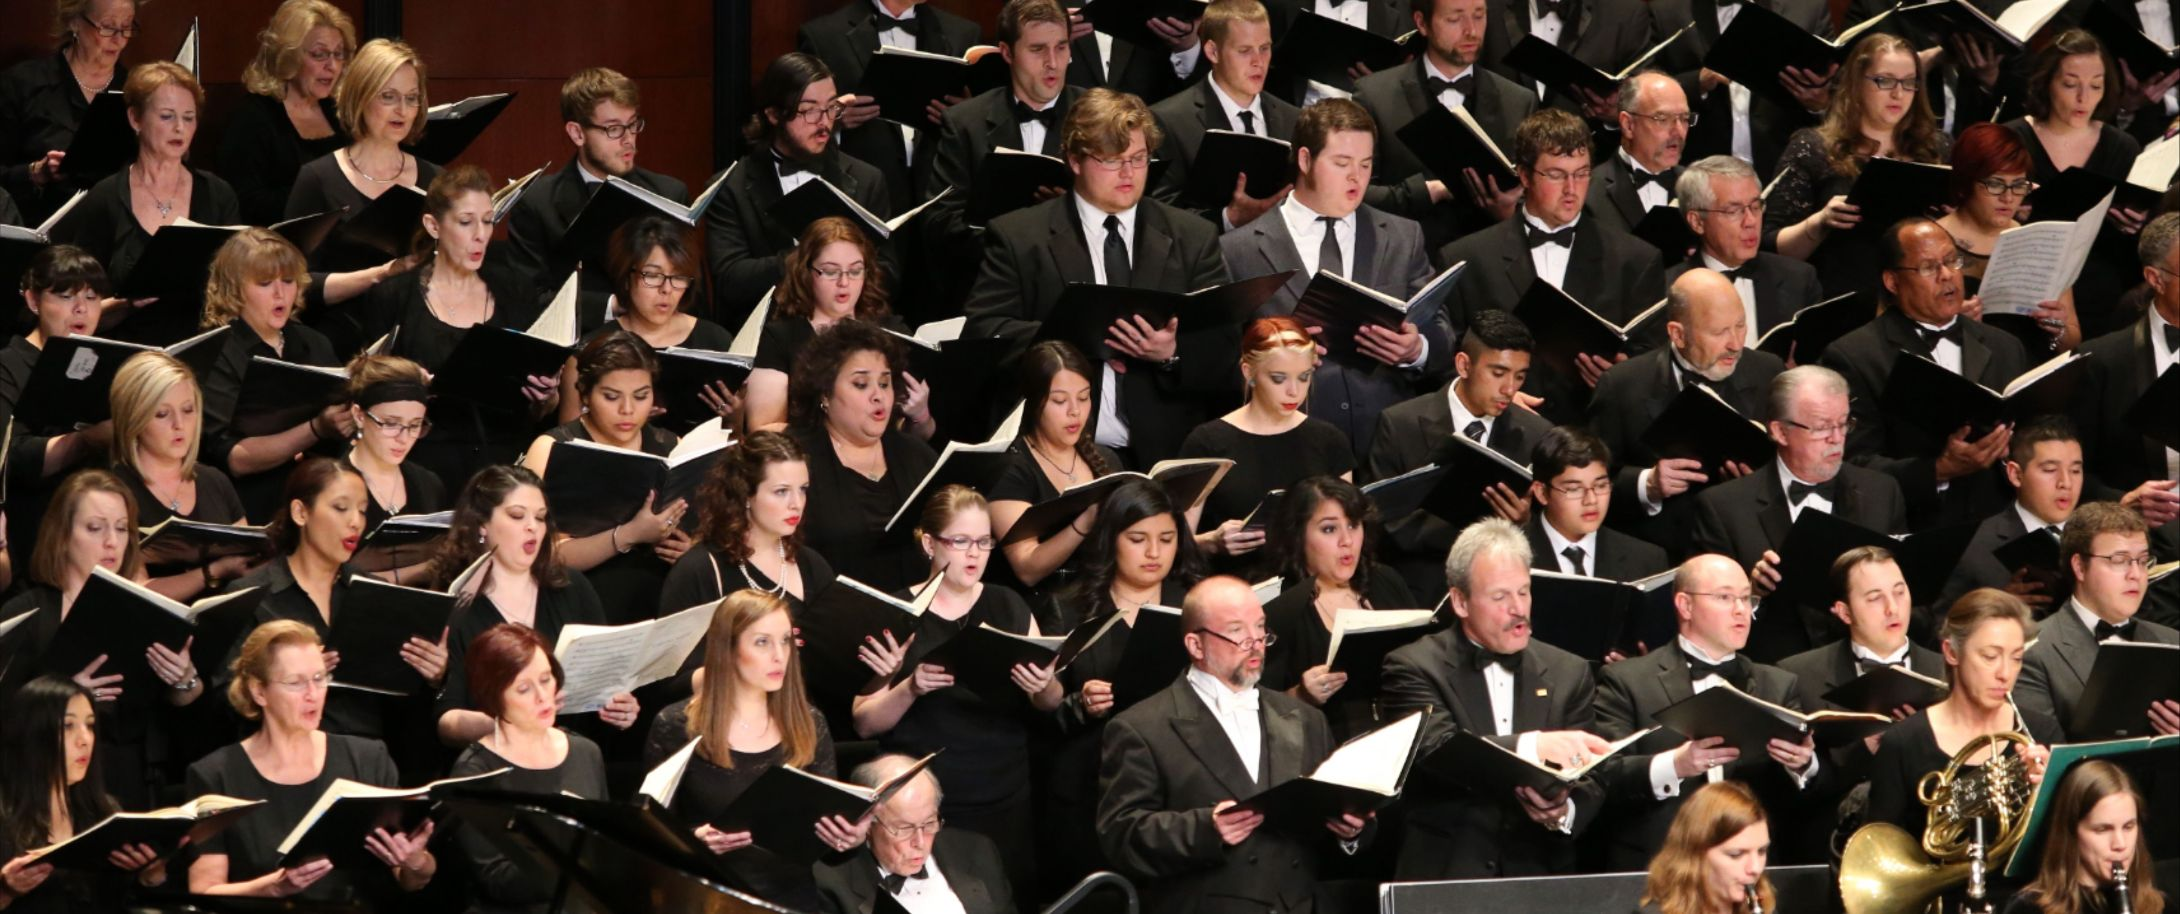 MOSC Choral Concert - Mass in B Minor by J.S. Bach